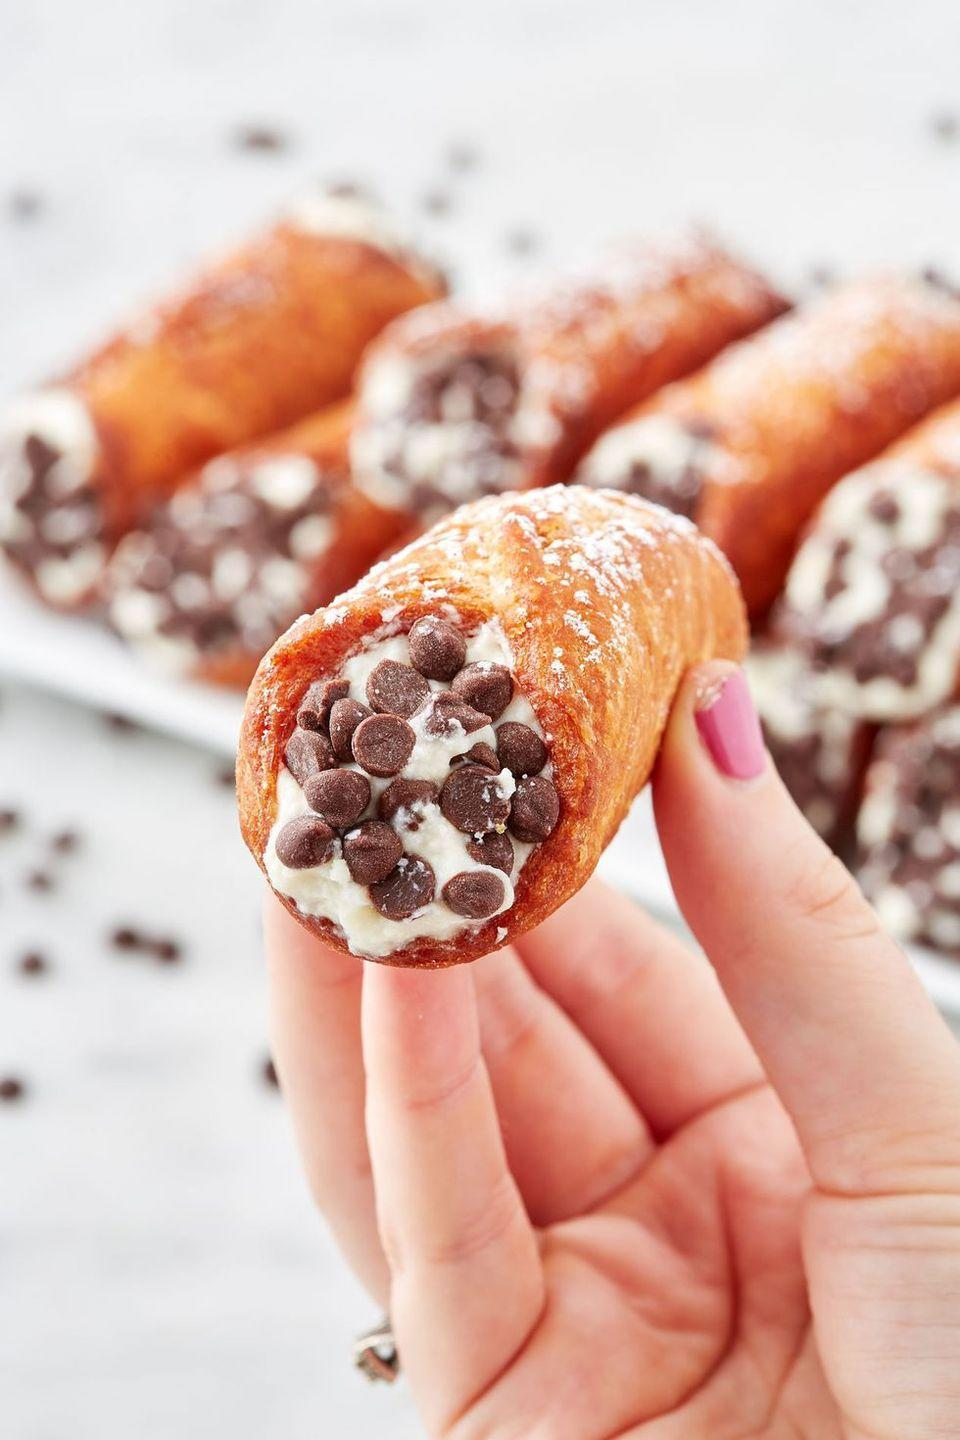 """<p>That's right, you can cook the dough of this Italian favorite right in your air fryer! It will make the shell extra crisp when paired with the creamy filling.</p><p><em><a href=""""https://www.delish.com/cooking/recipe-ideas/a28626292/homemade-classic-cannoli-recipe/"""" rel=""""nofollow noopener"""" target=""""_blank"""" data-ylk=""""slk:Get the recipe from Delish >>"""" class=""""link rapid-noclick-resp"""">Get the recipe from Delish >></a></em></p>"""